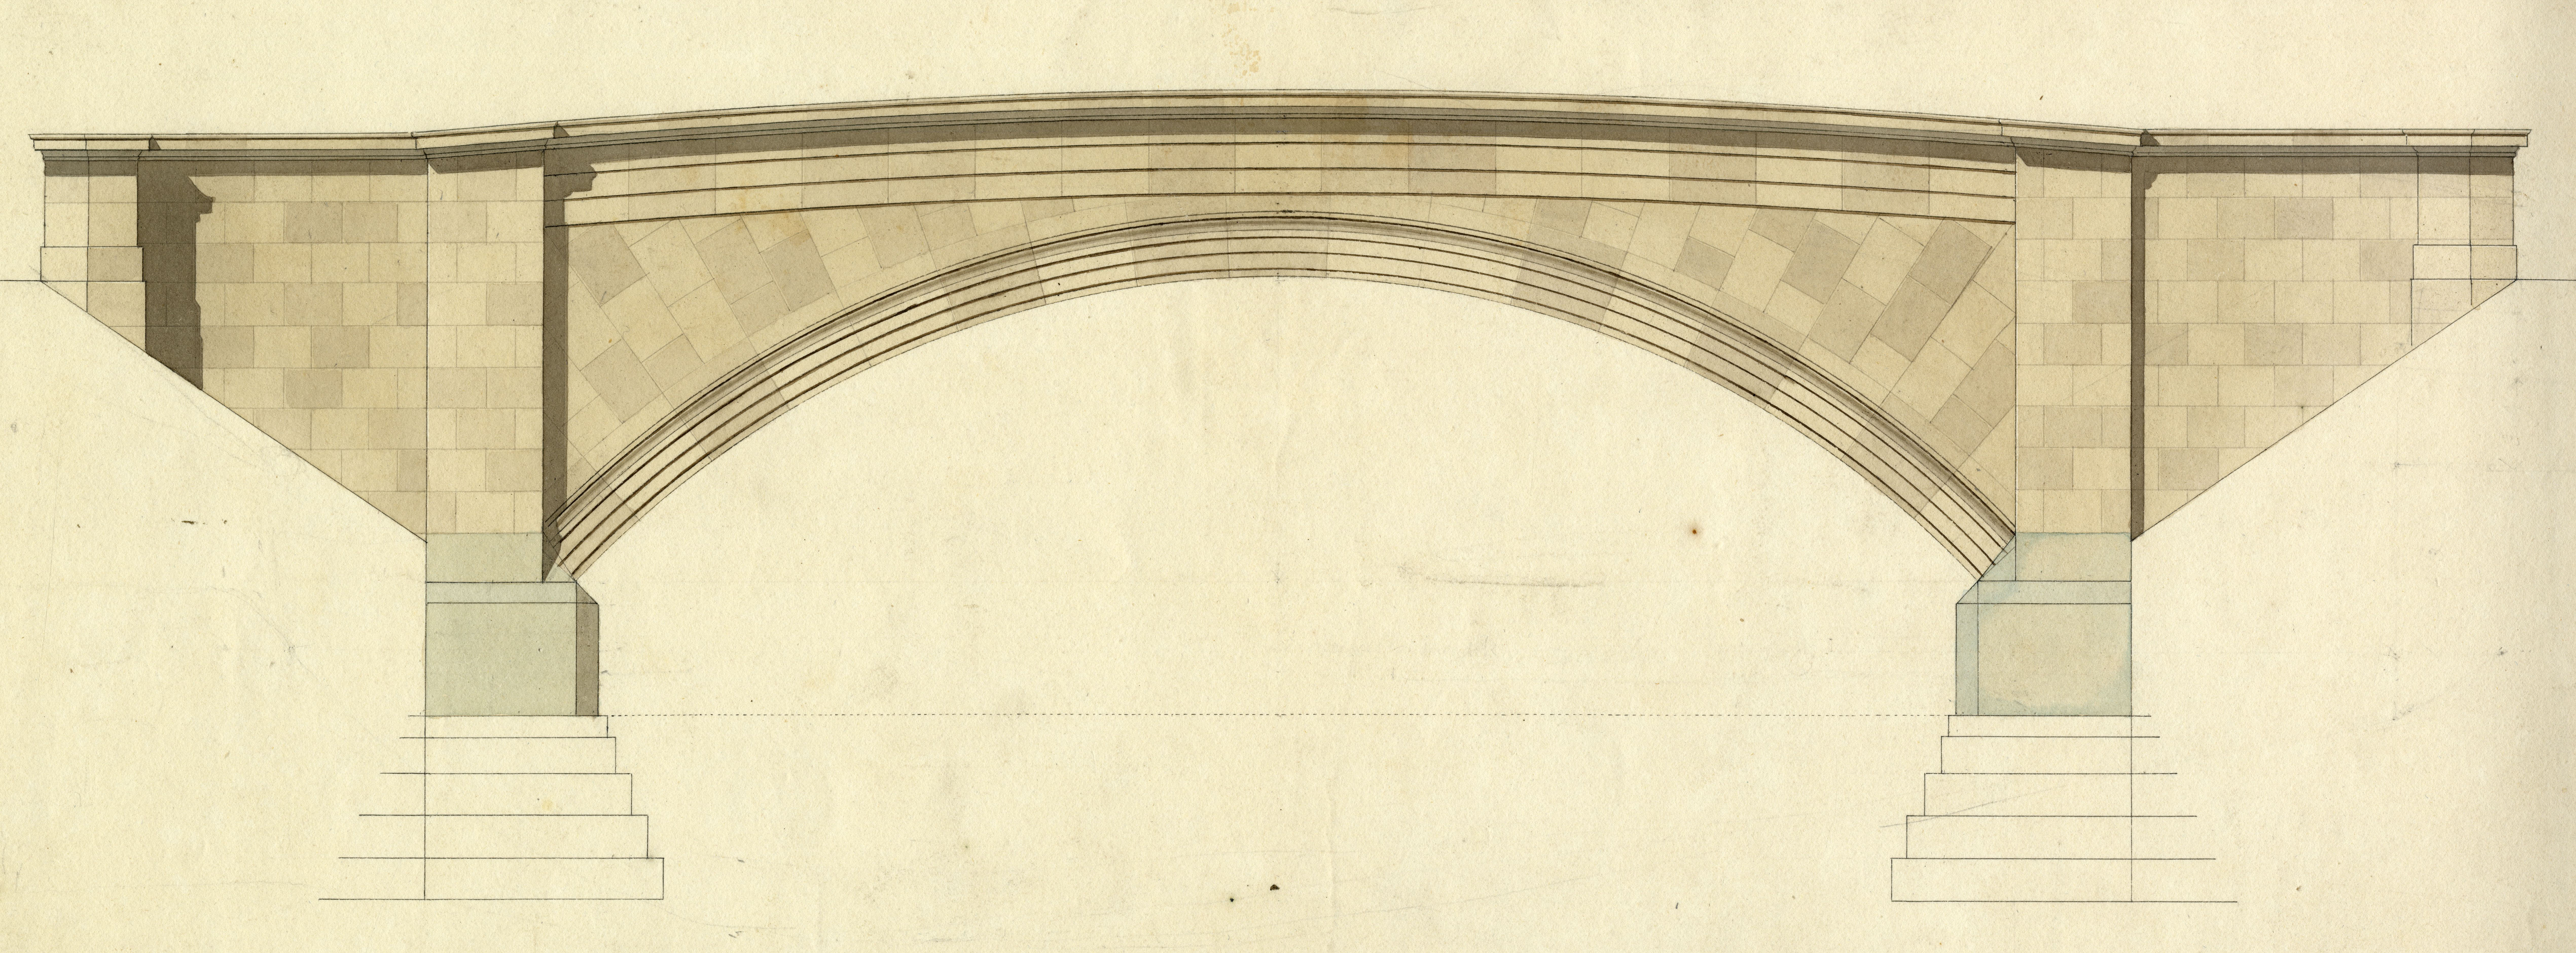 Wilkins' drawings of the new bridge. (KCD/391)